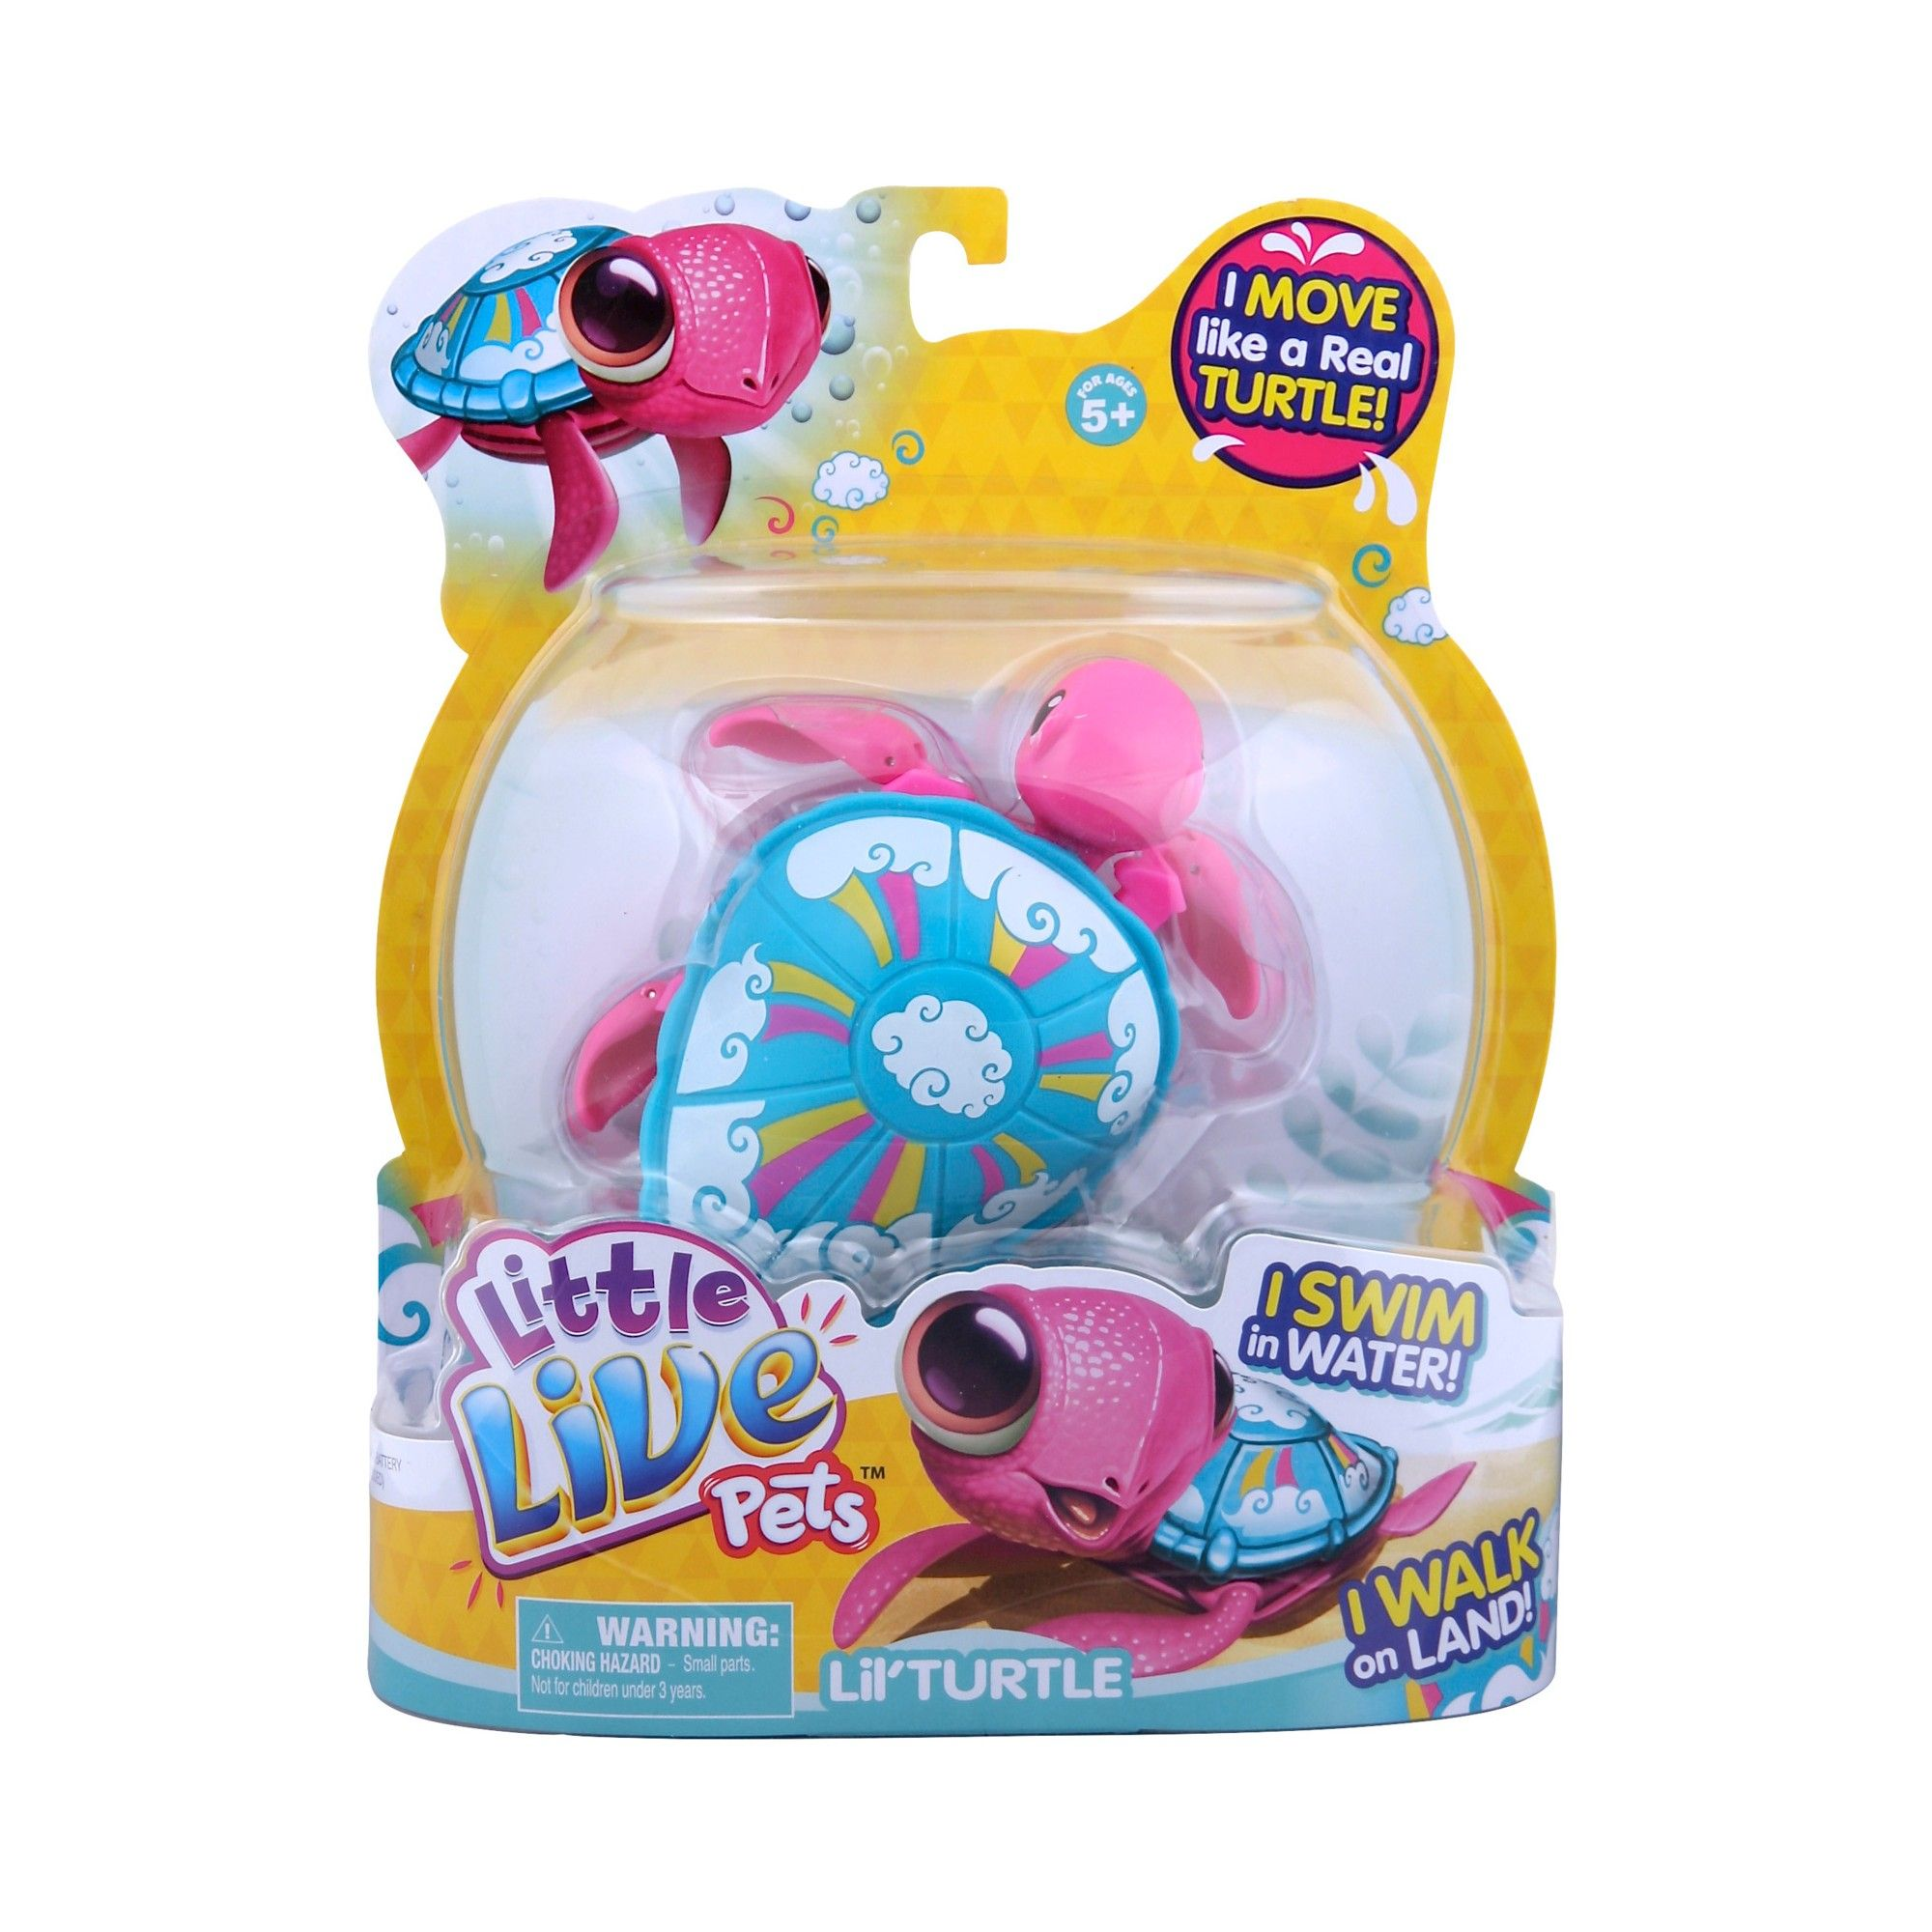 Toys Little live pets, Pet turtle, Baby turtles